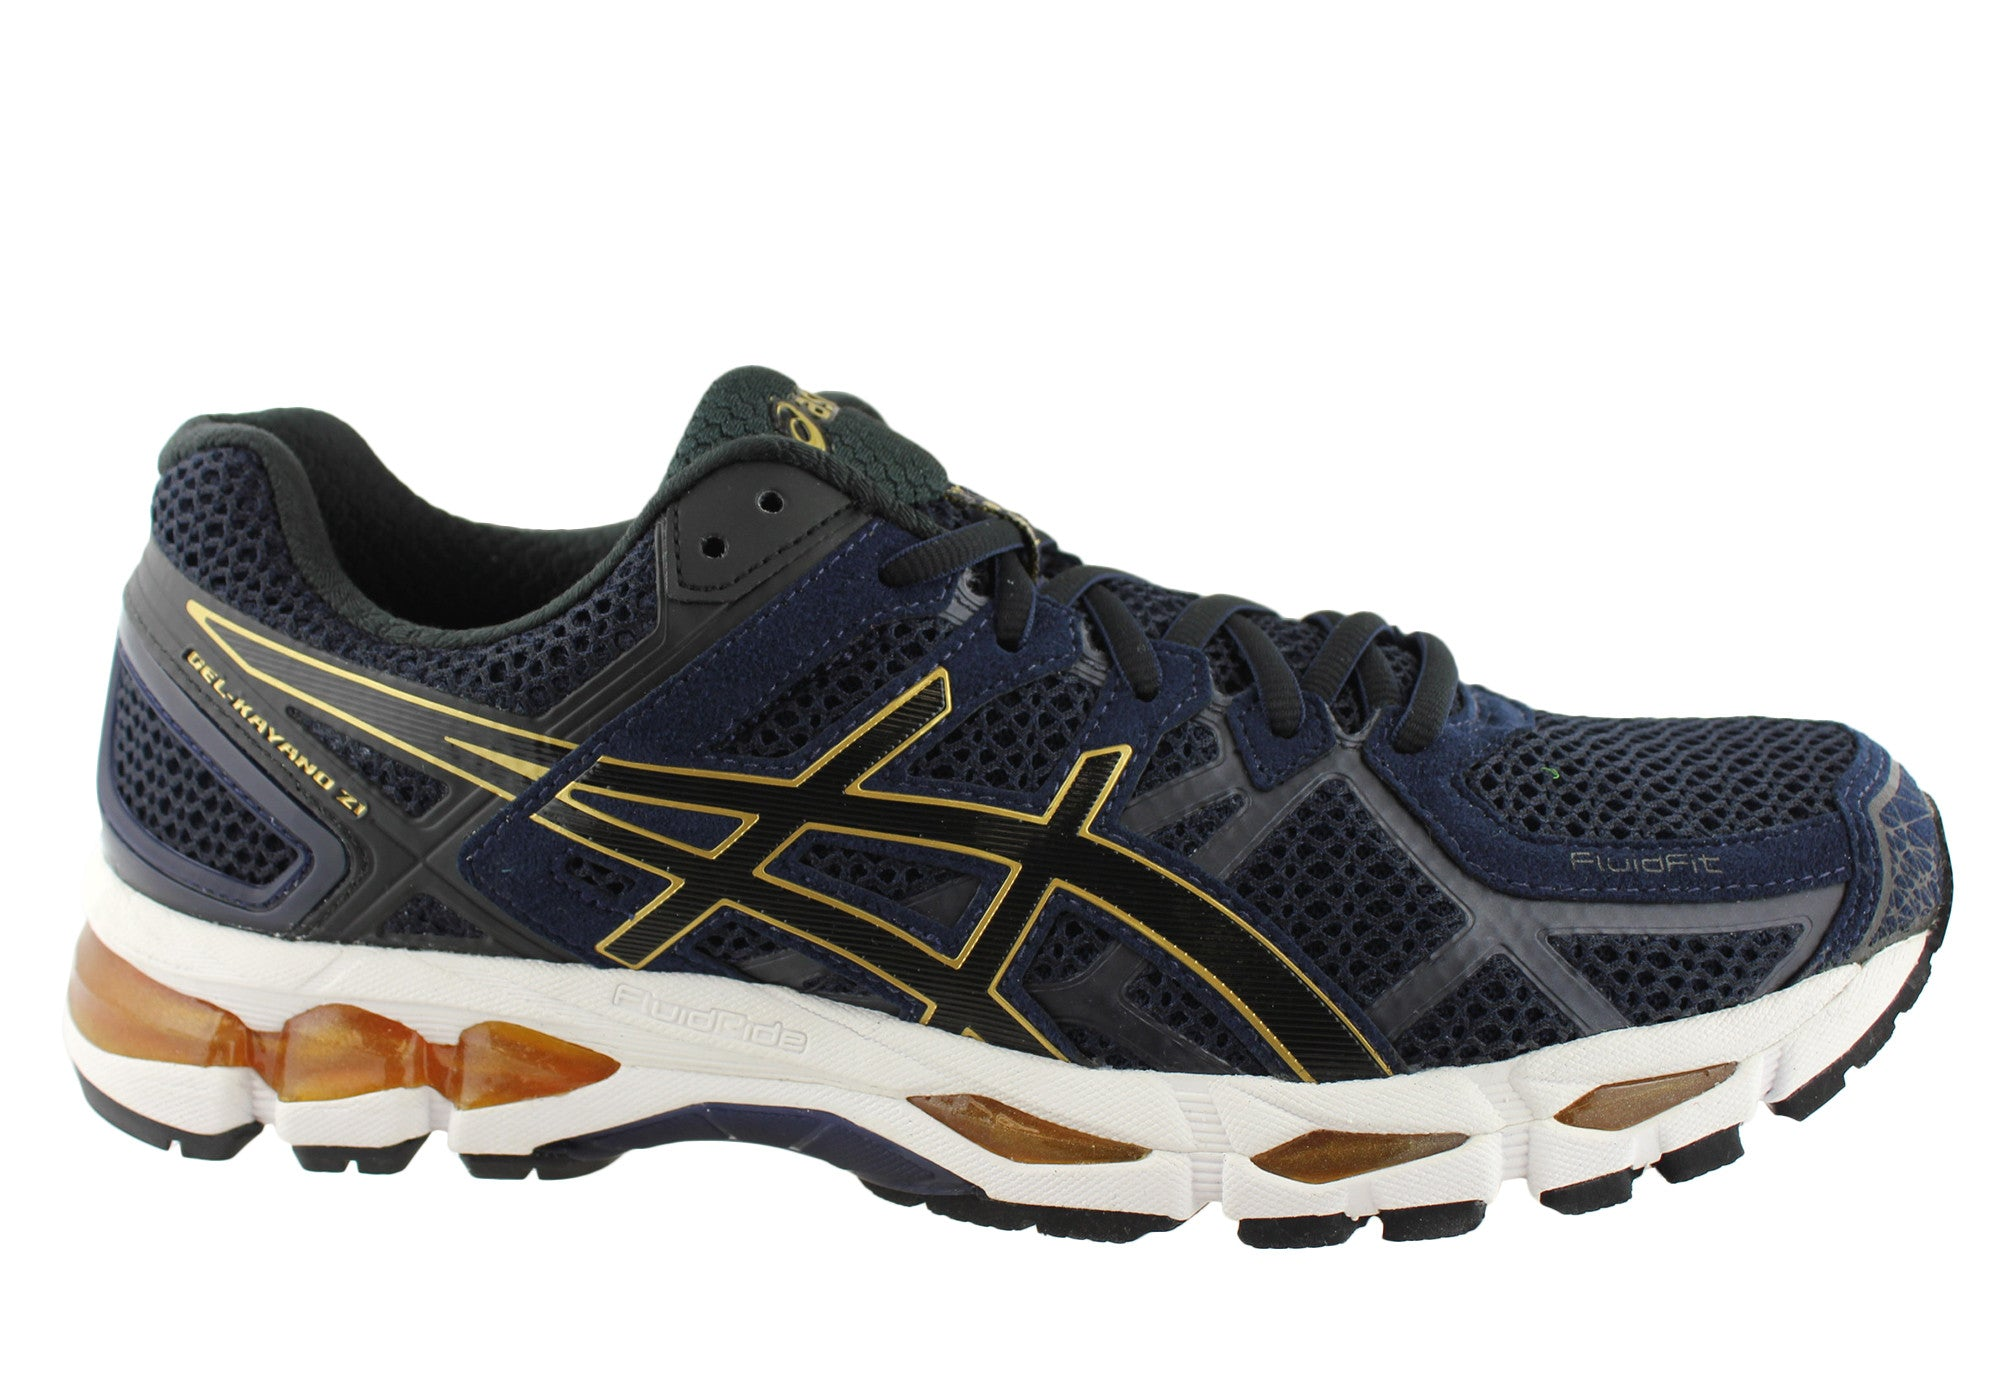 297853d0b539 discount code for yellow gold womens asics gel kayano 21 shoes 52459 ...